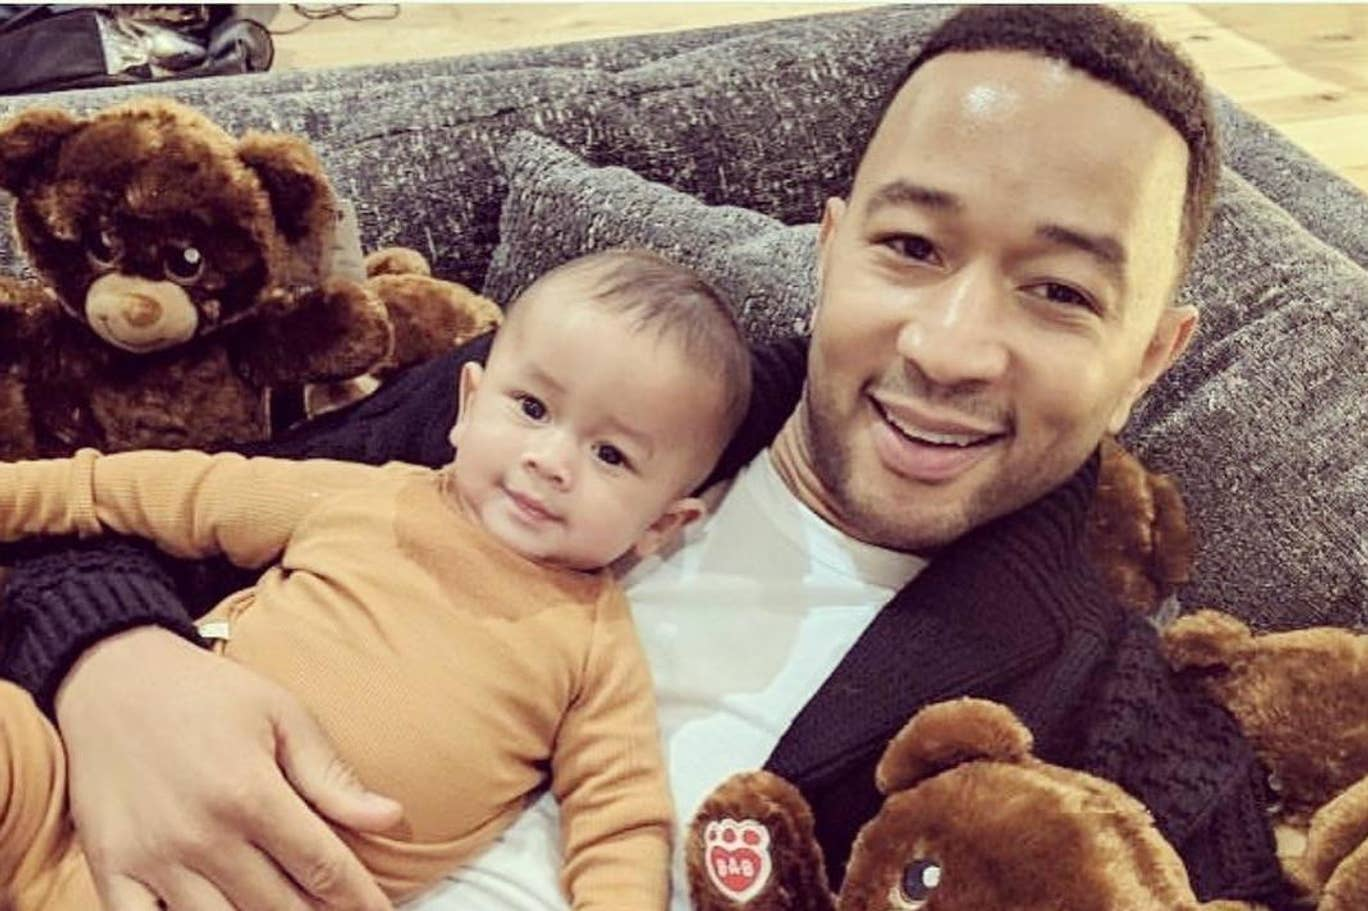 miles legend john legend chrissy teigen celebrity children